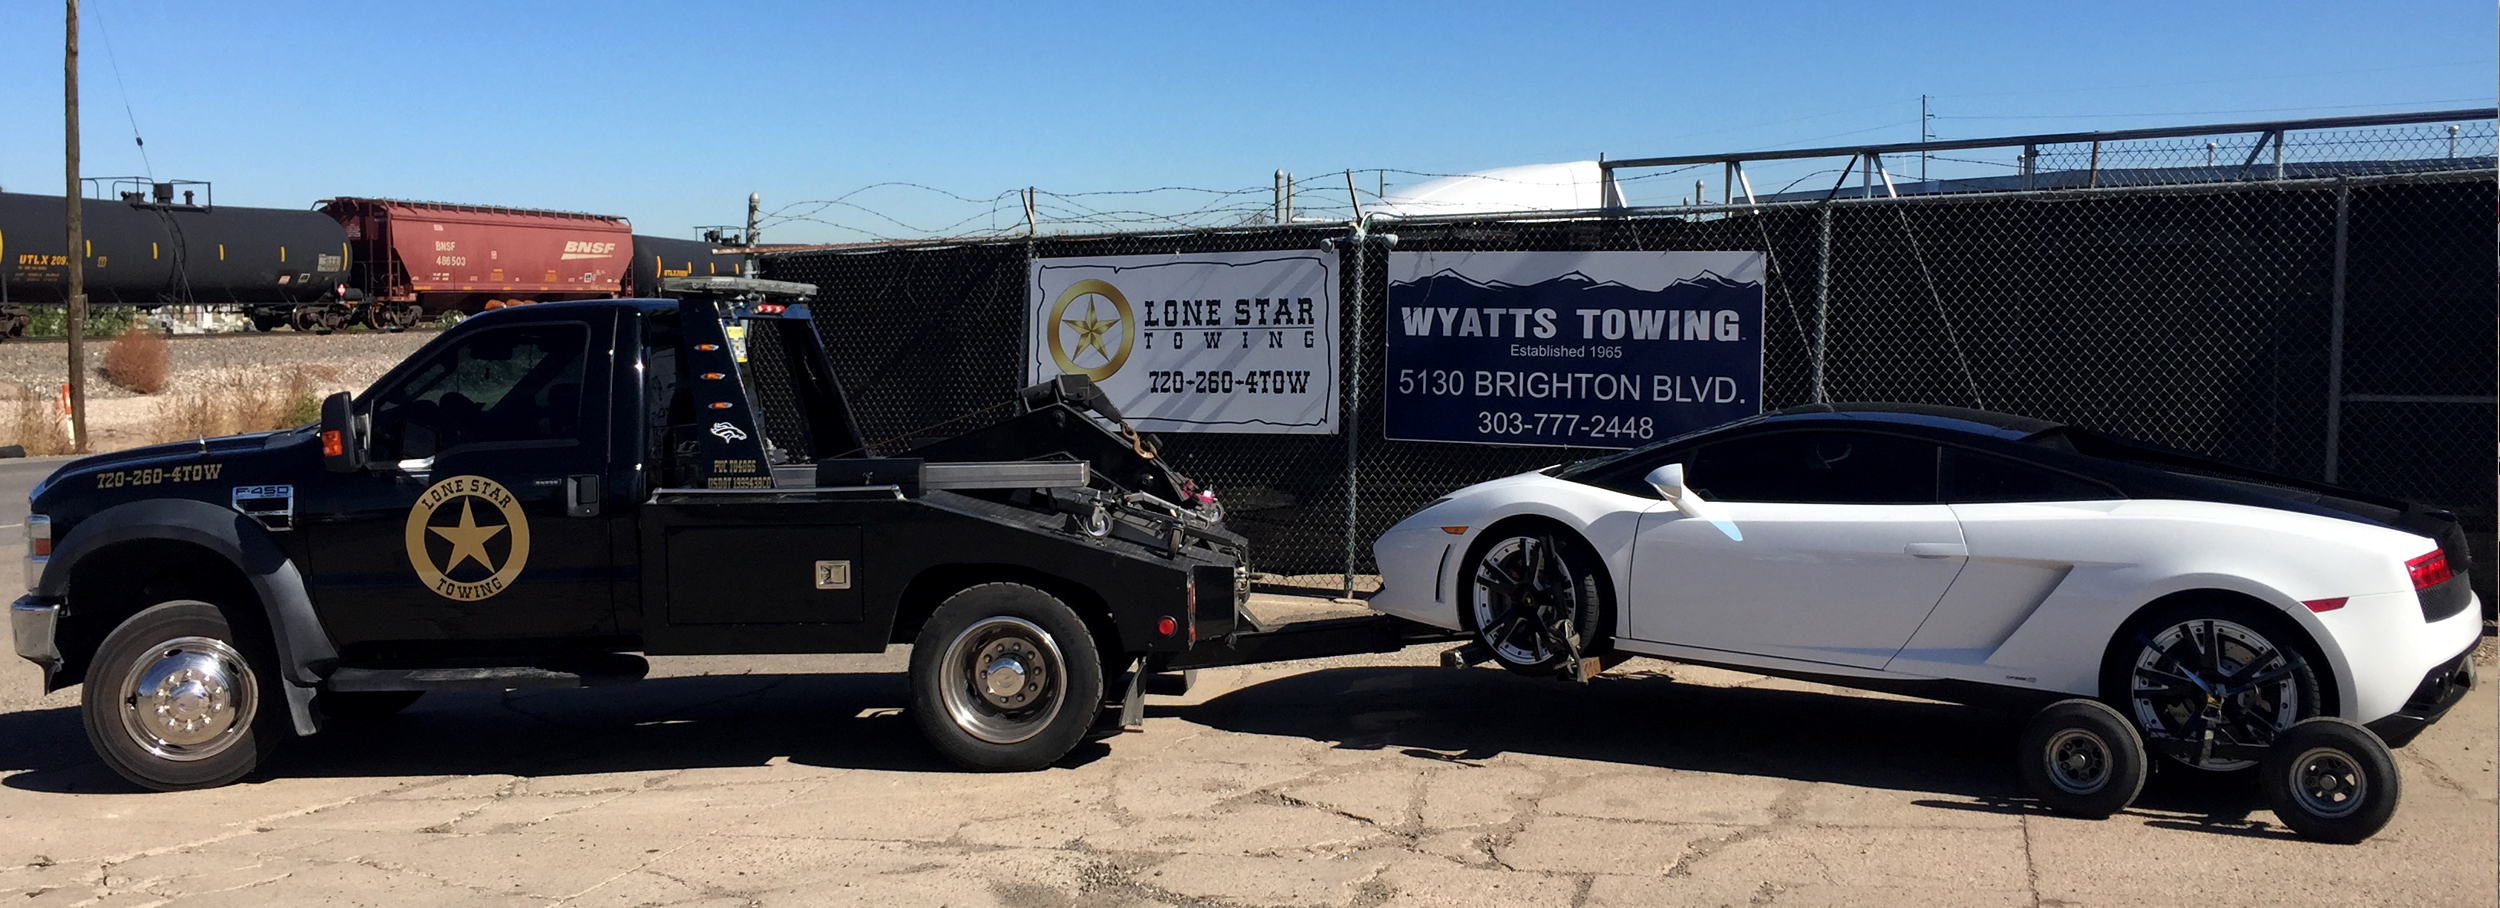 Wyatts Towing - Welcome to Wyatts Towing!